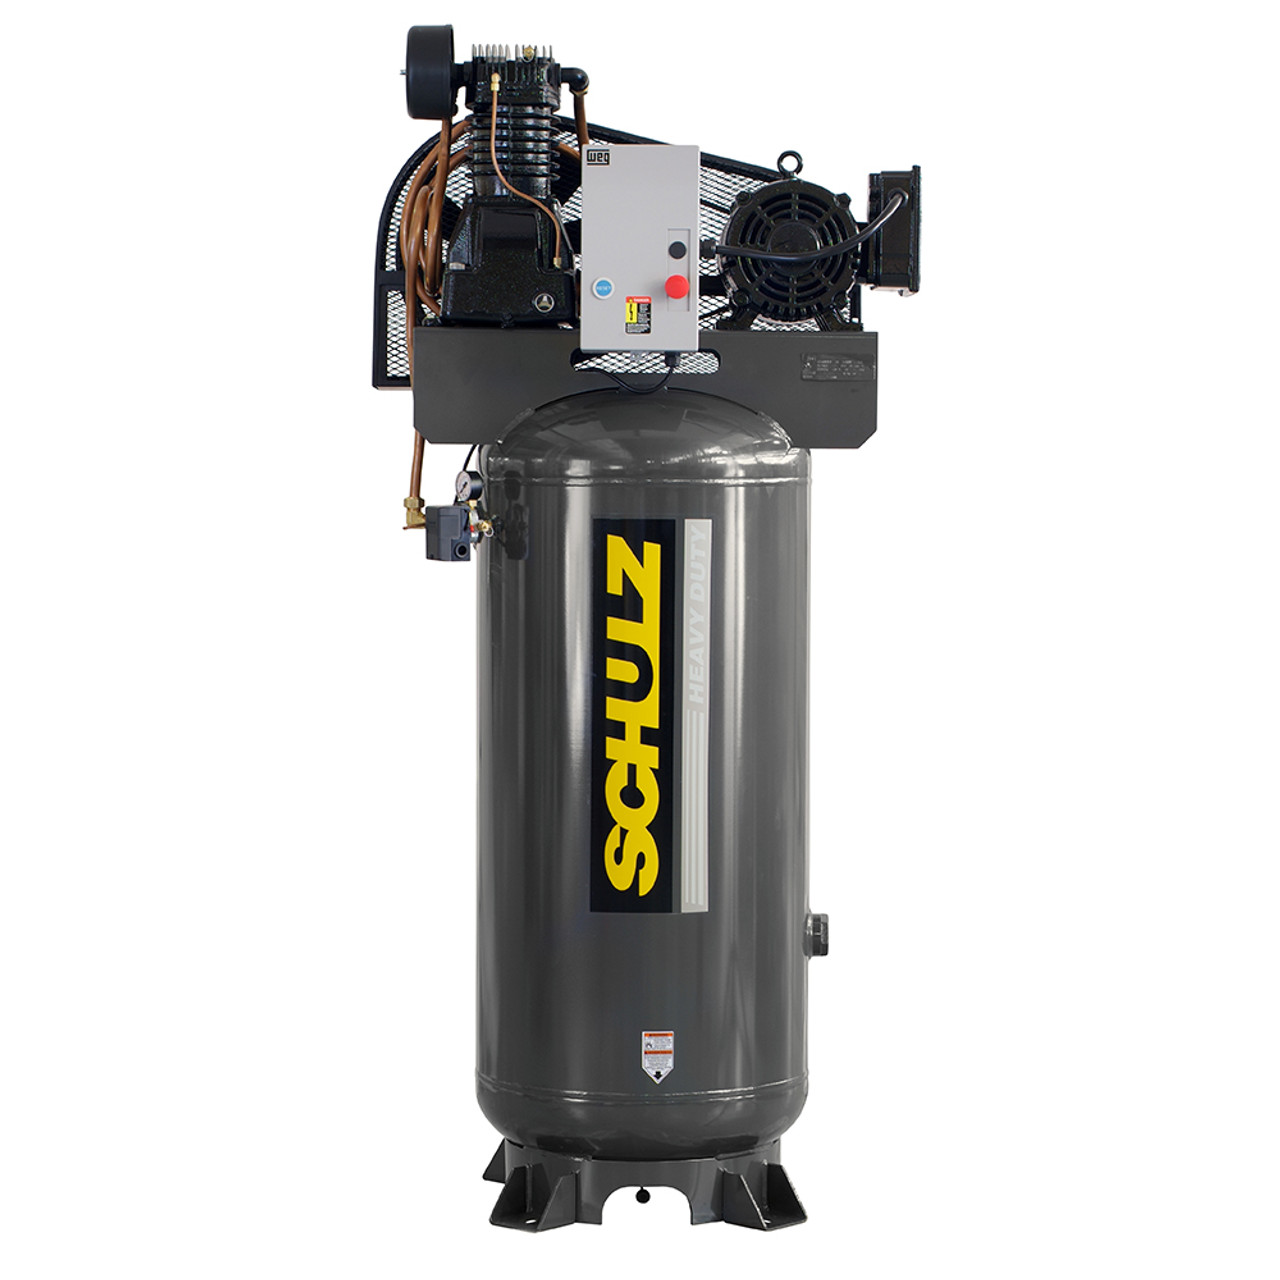 Schulz 580VL30X-1 5HP Single Phase Two Stage 80 Gallon Air Compressor